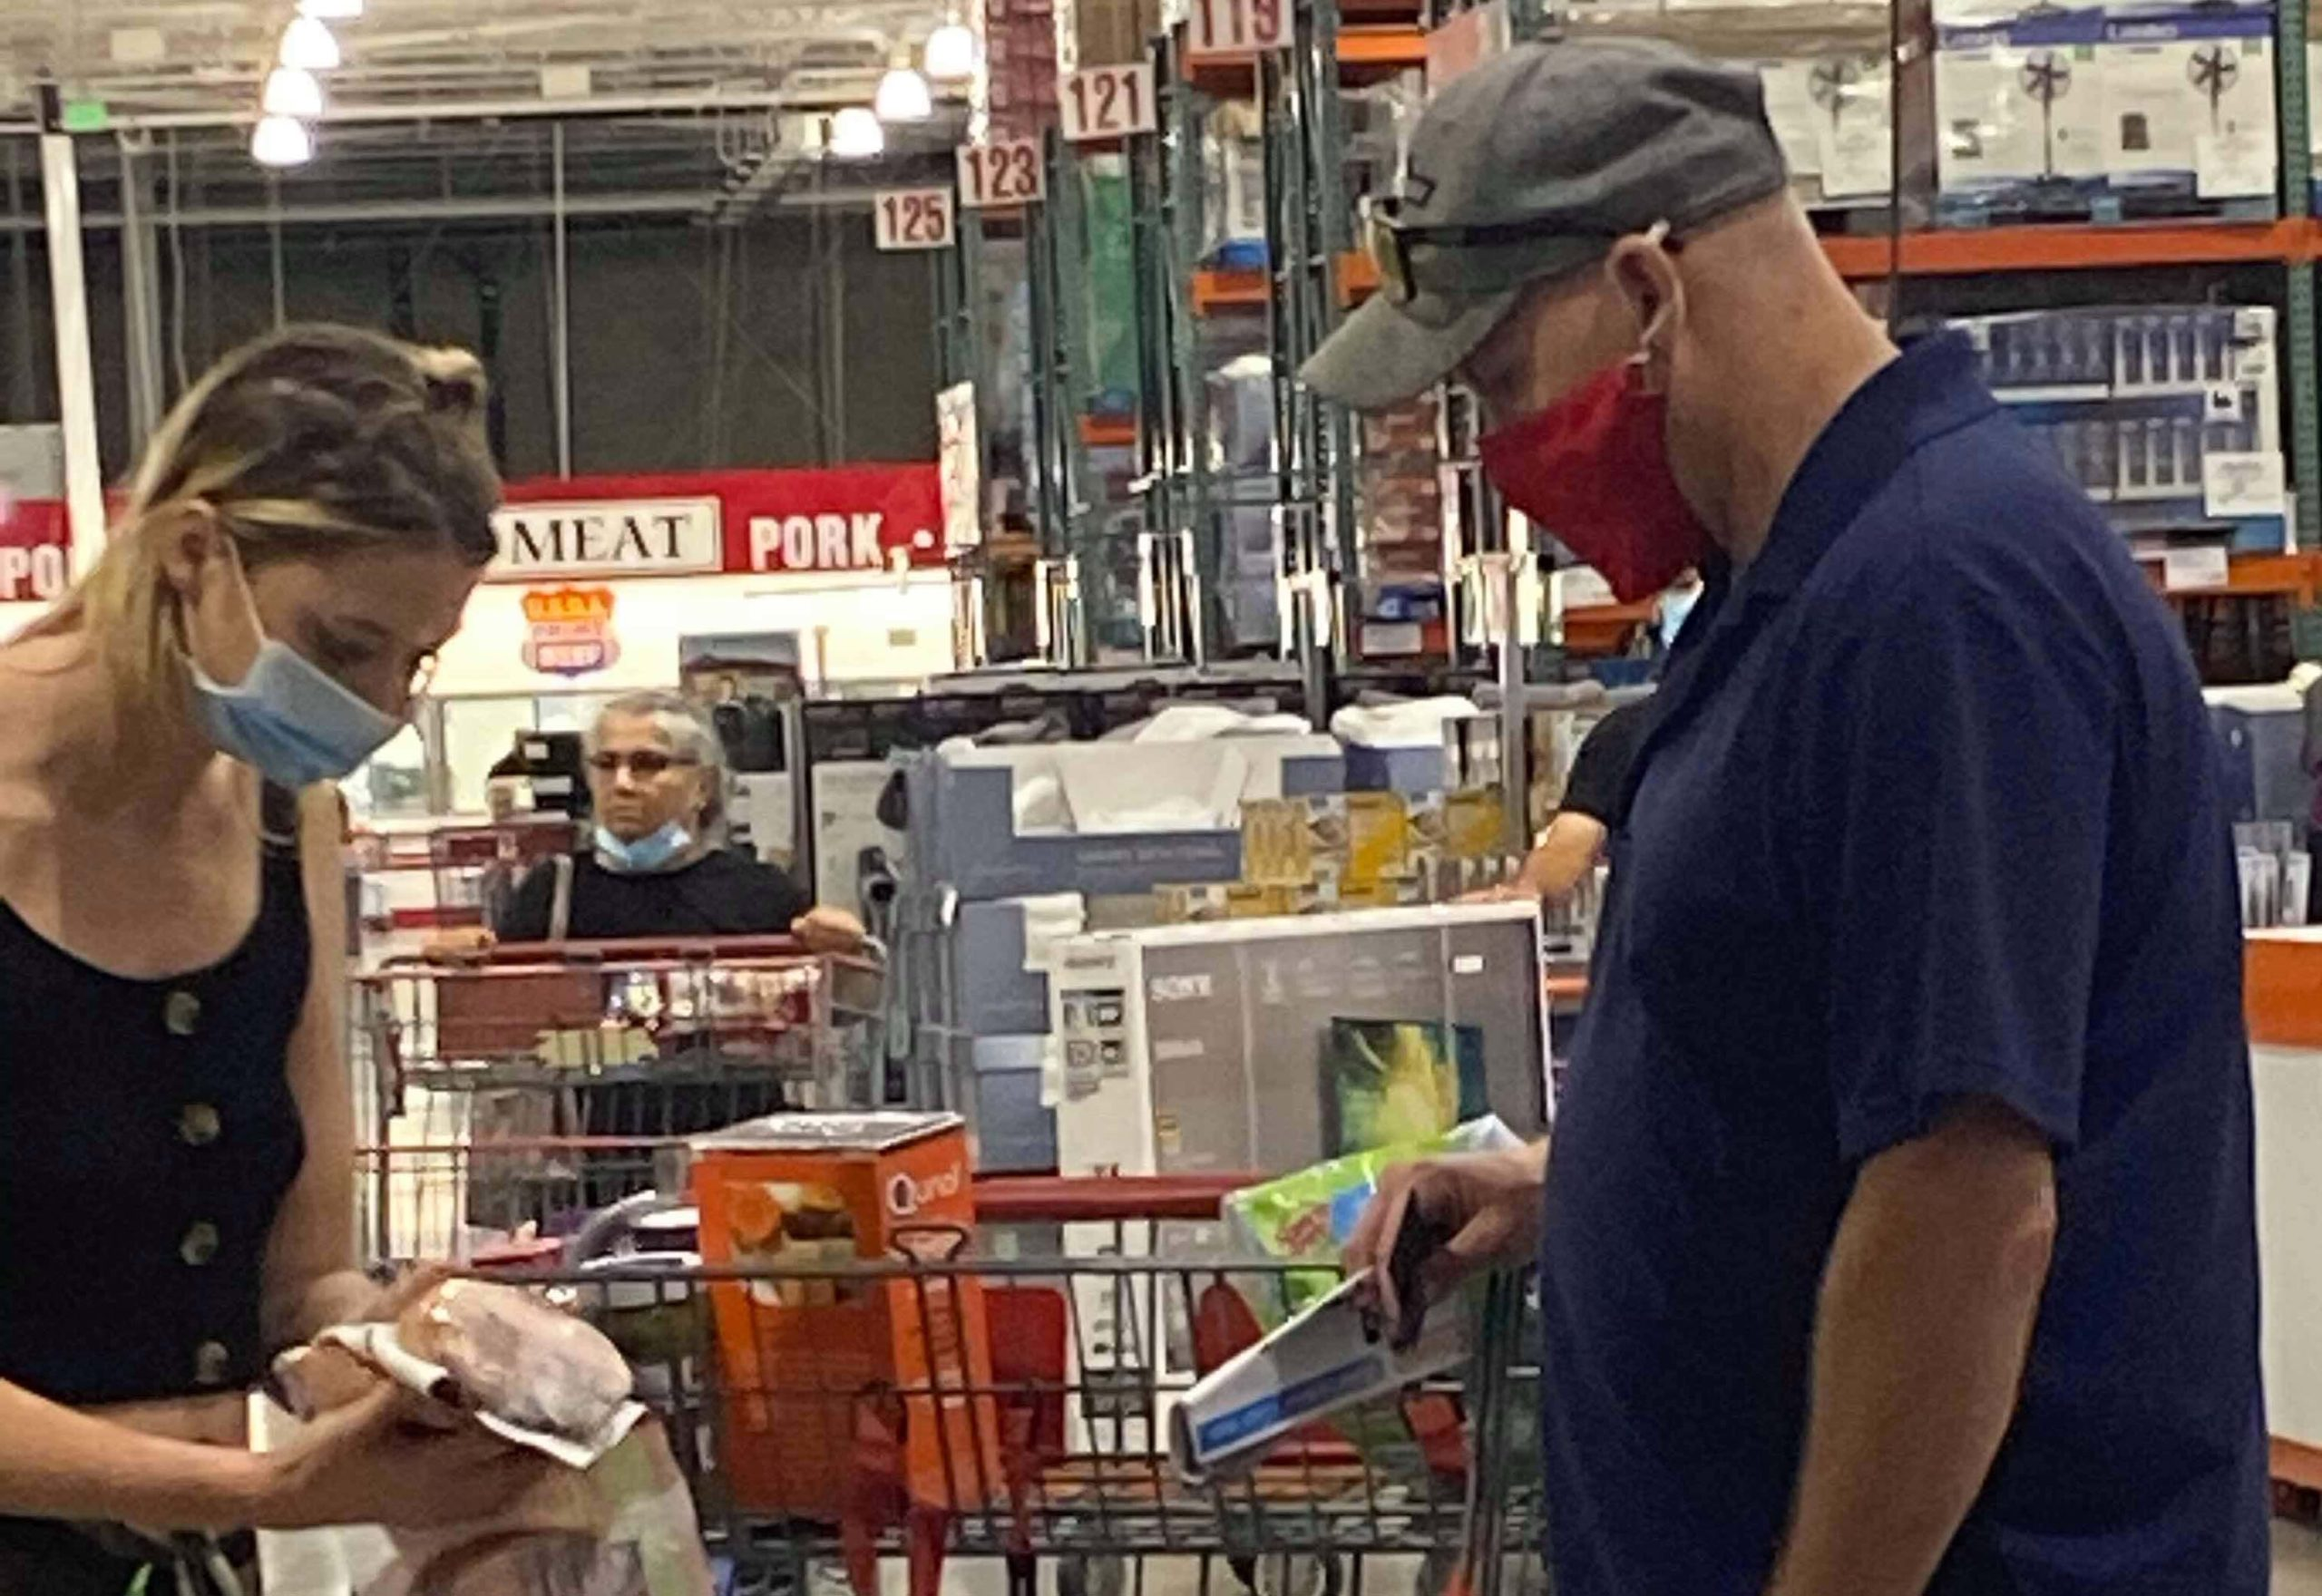 Couple sort groceries at Mission Valley Costco.